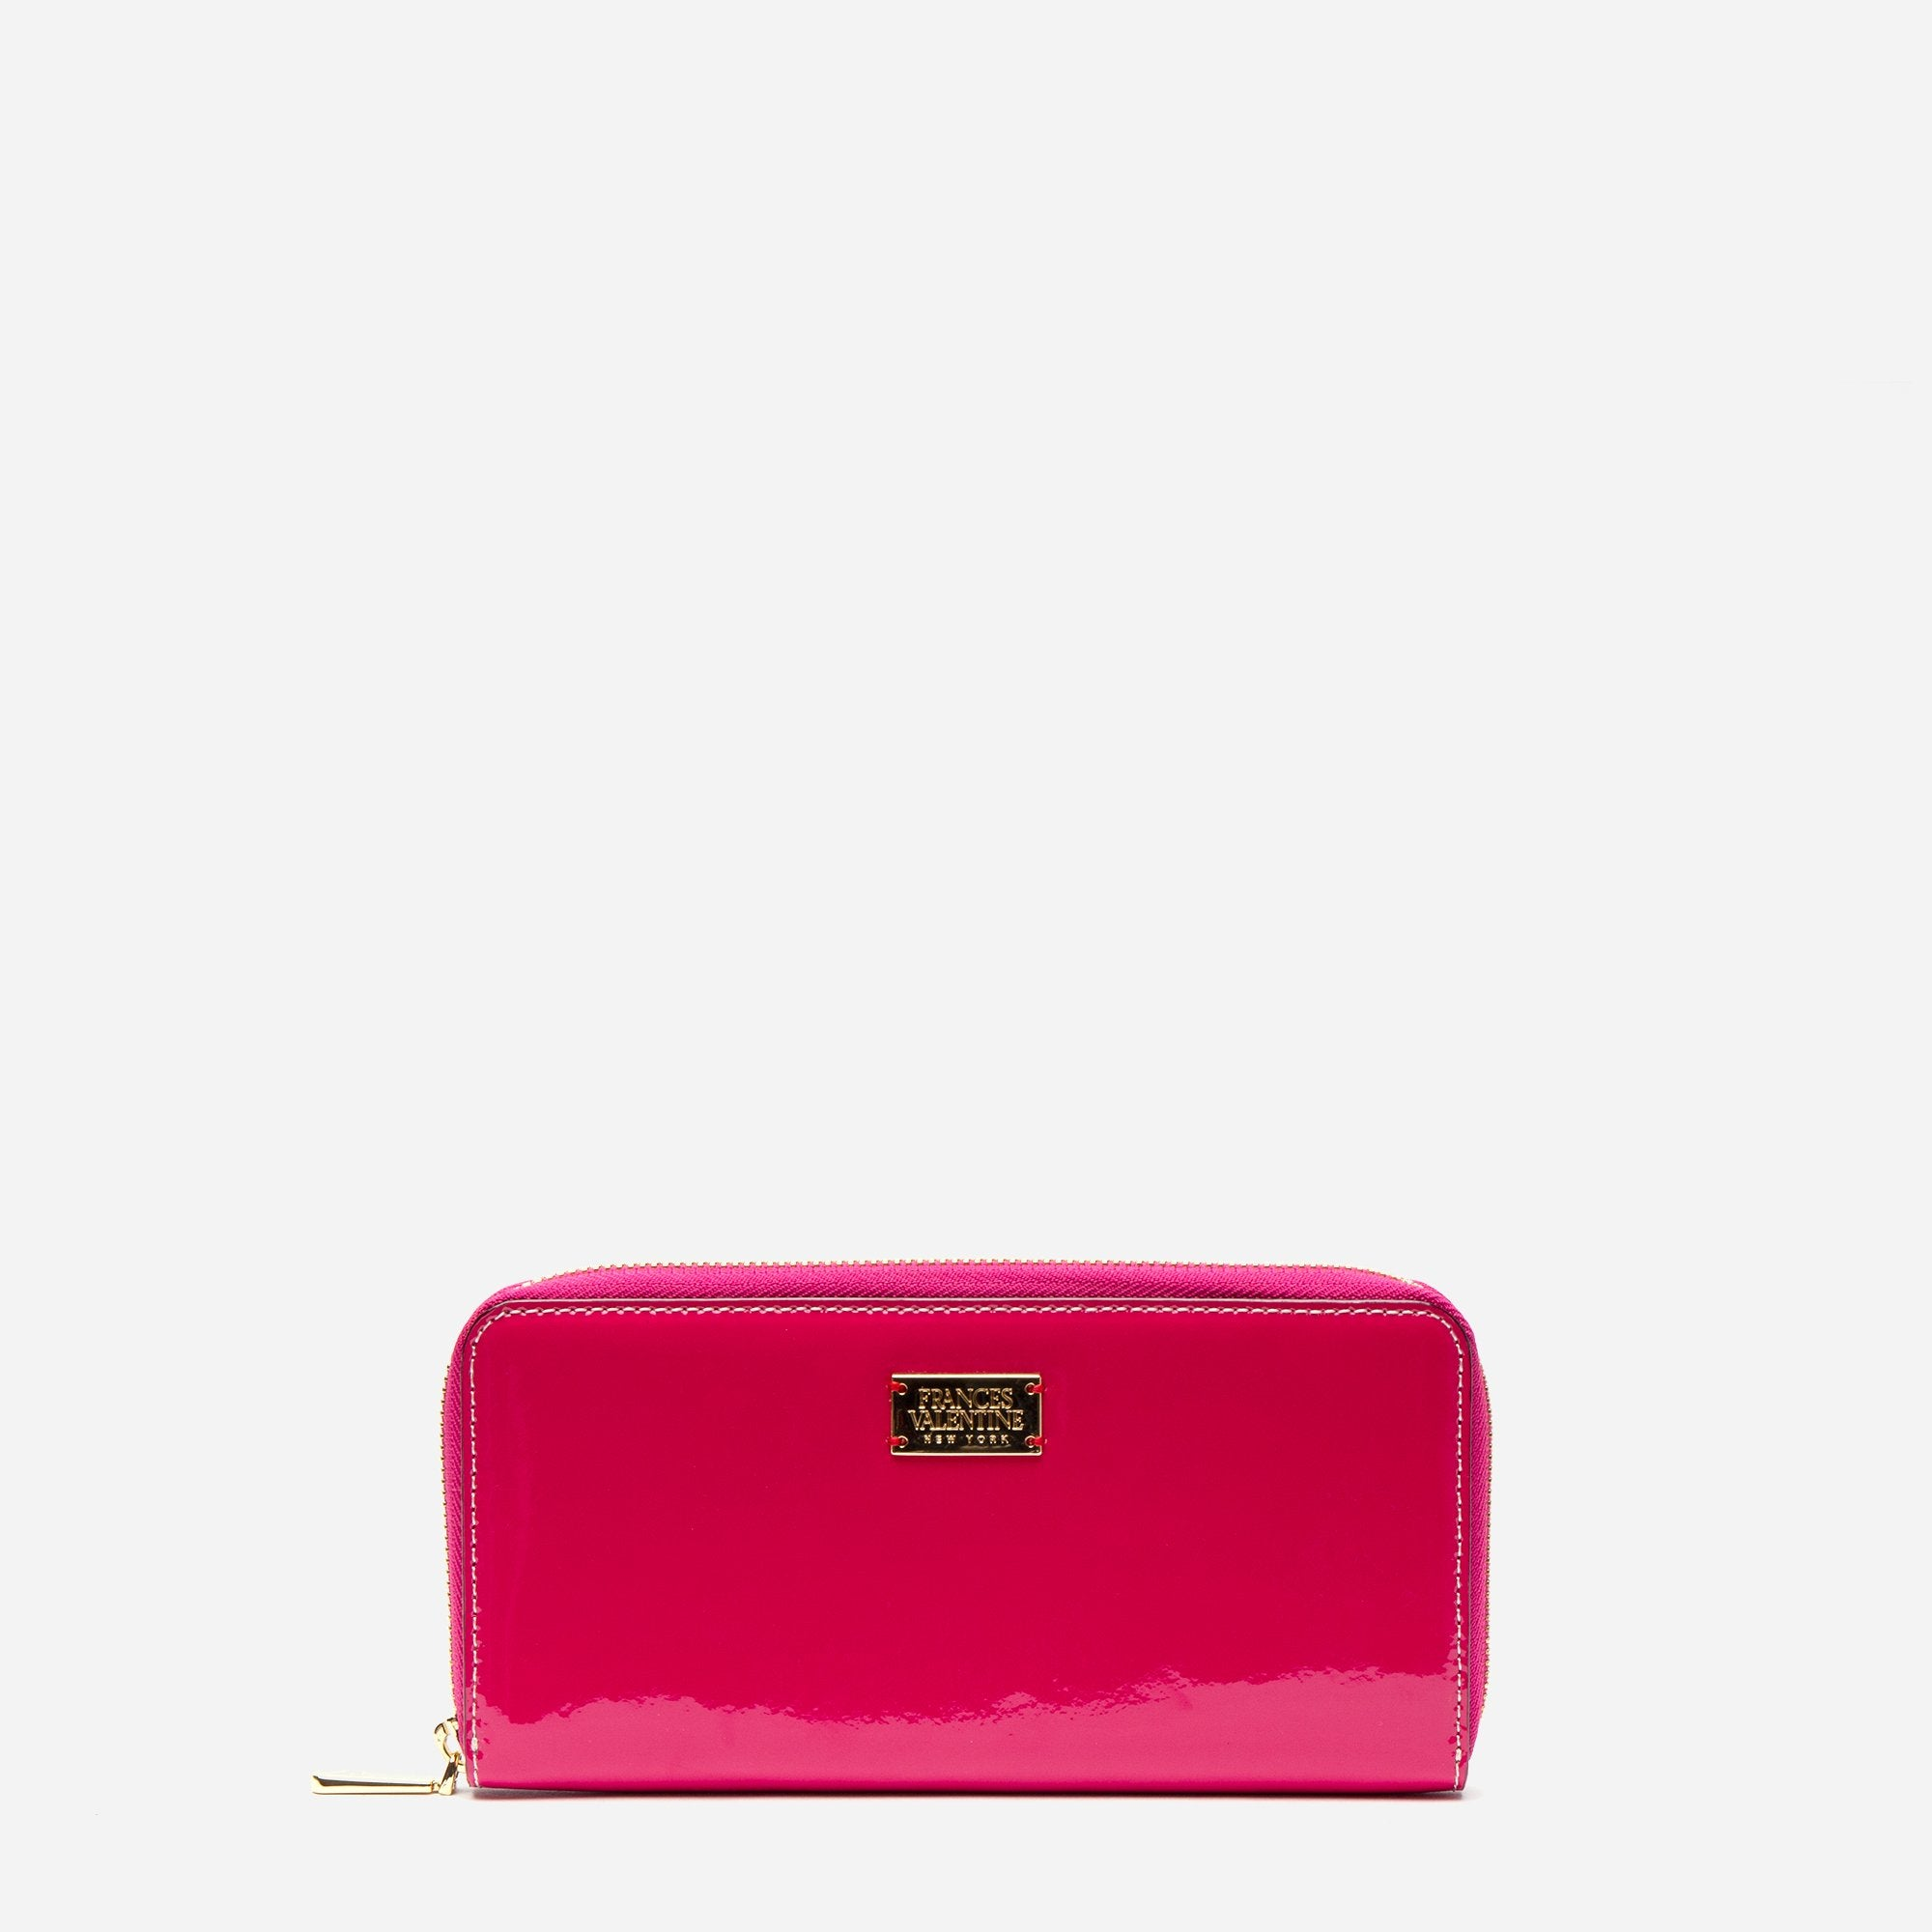 Washington Zip Wallet Soft Patent Pink Oyster - Frances Valentine